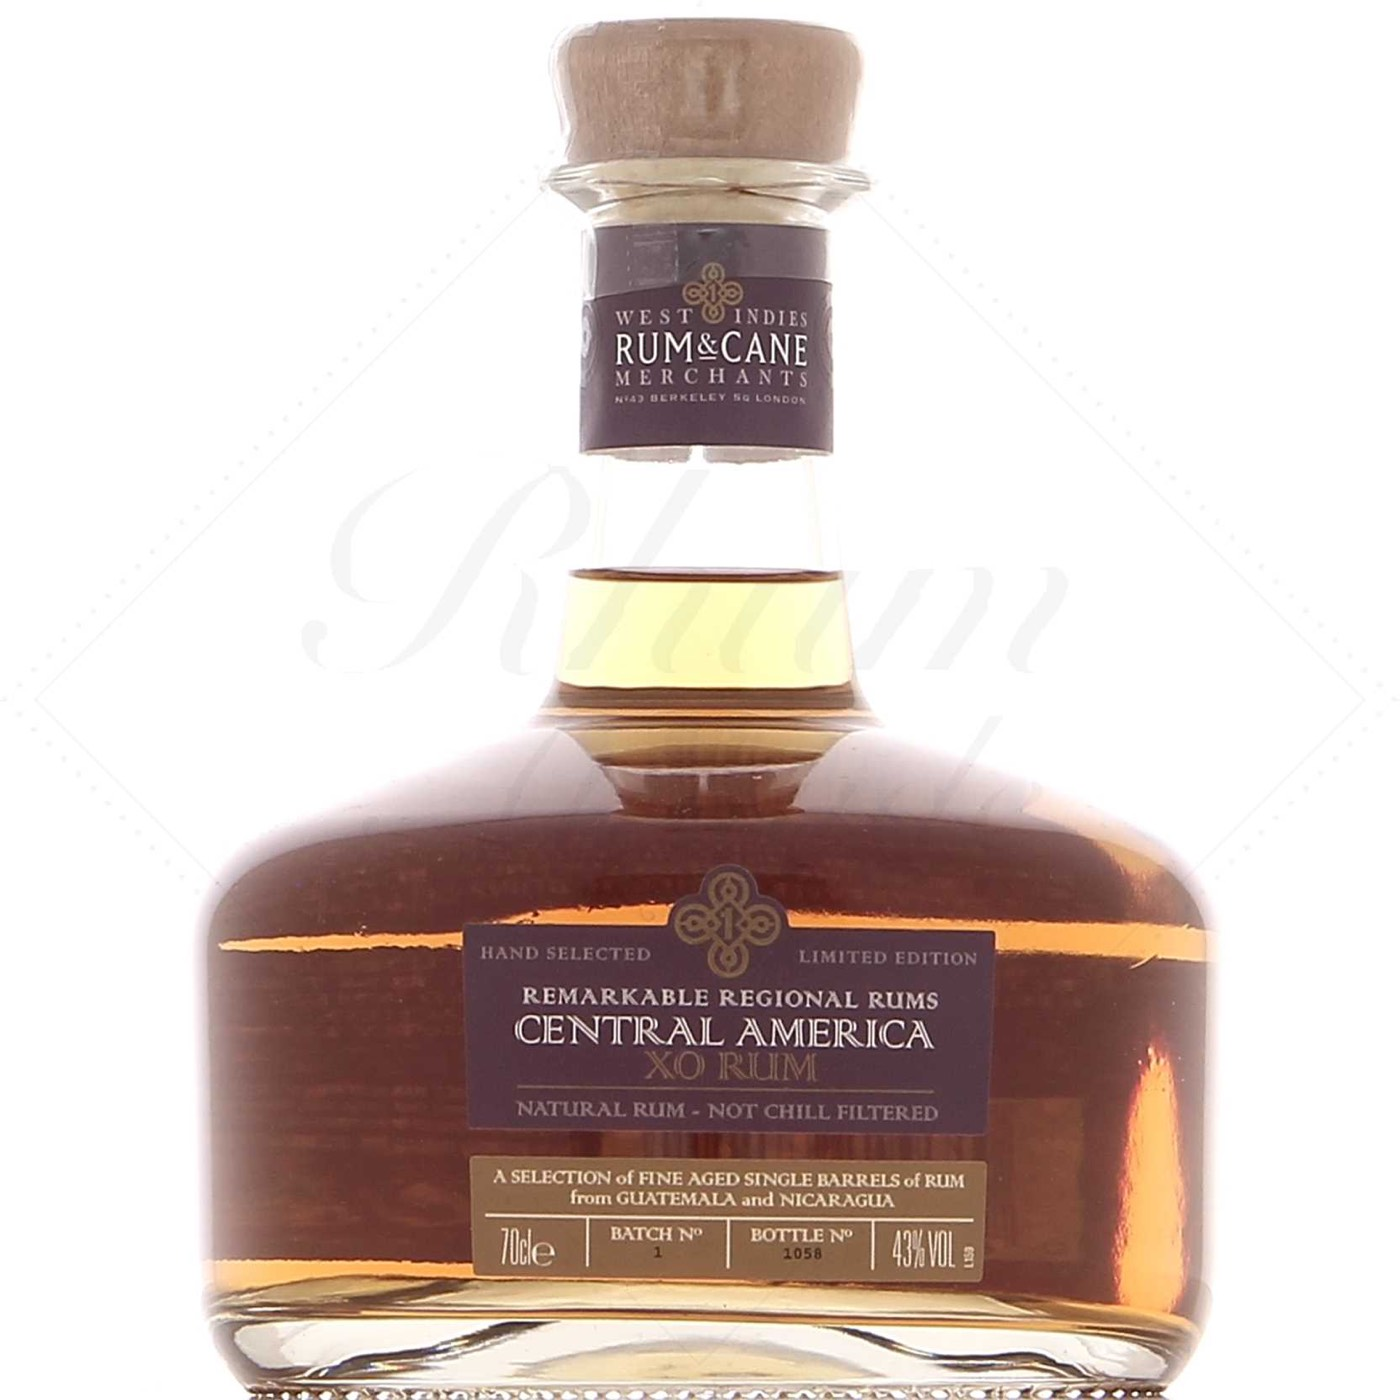 Bottle image of Rum & Cane Central America XO